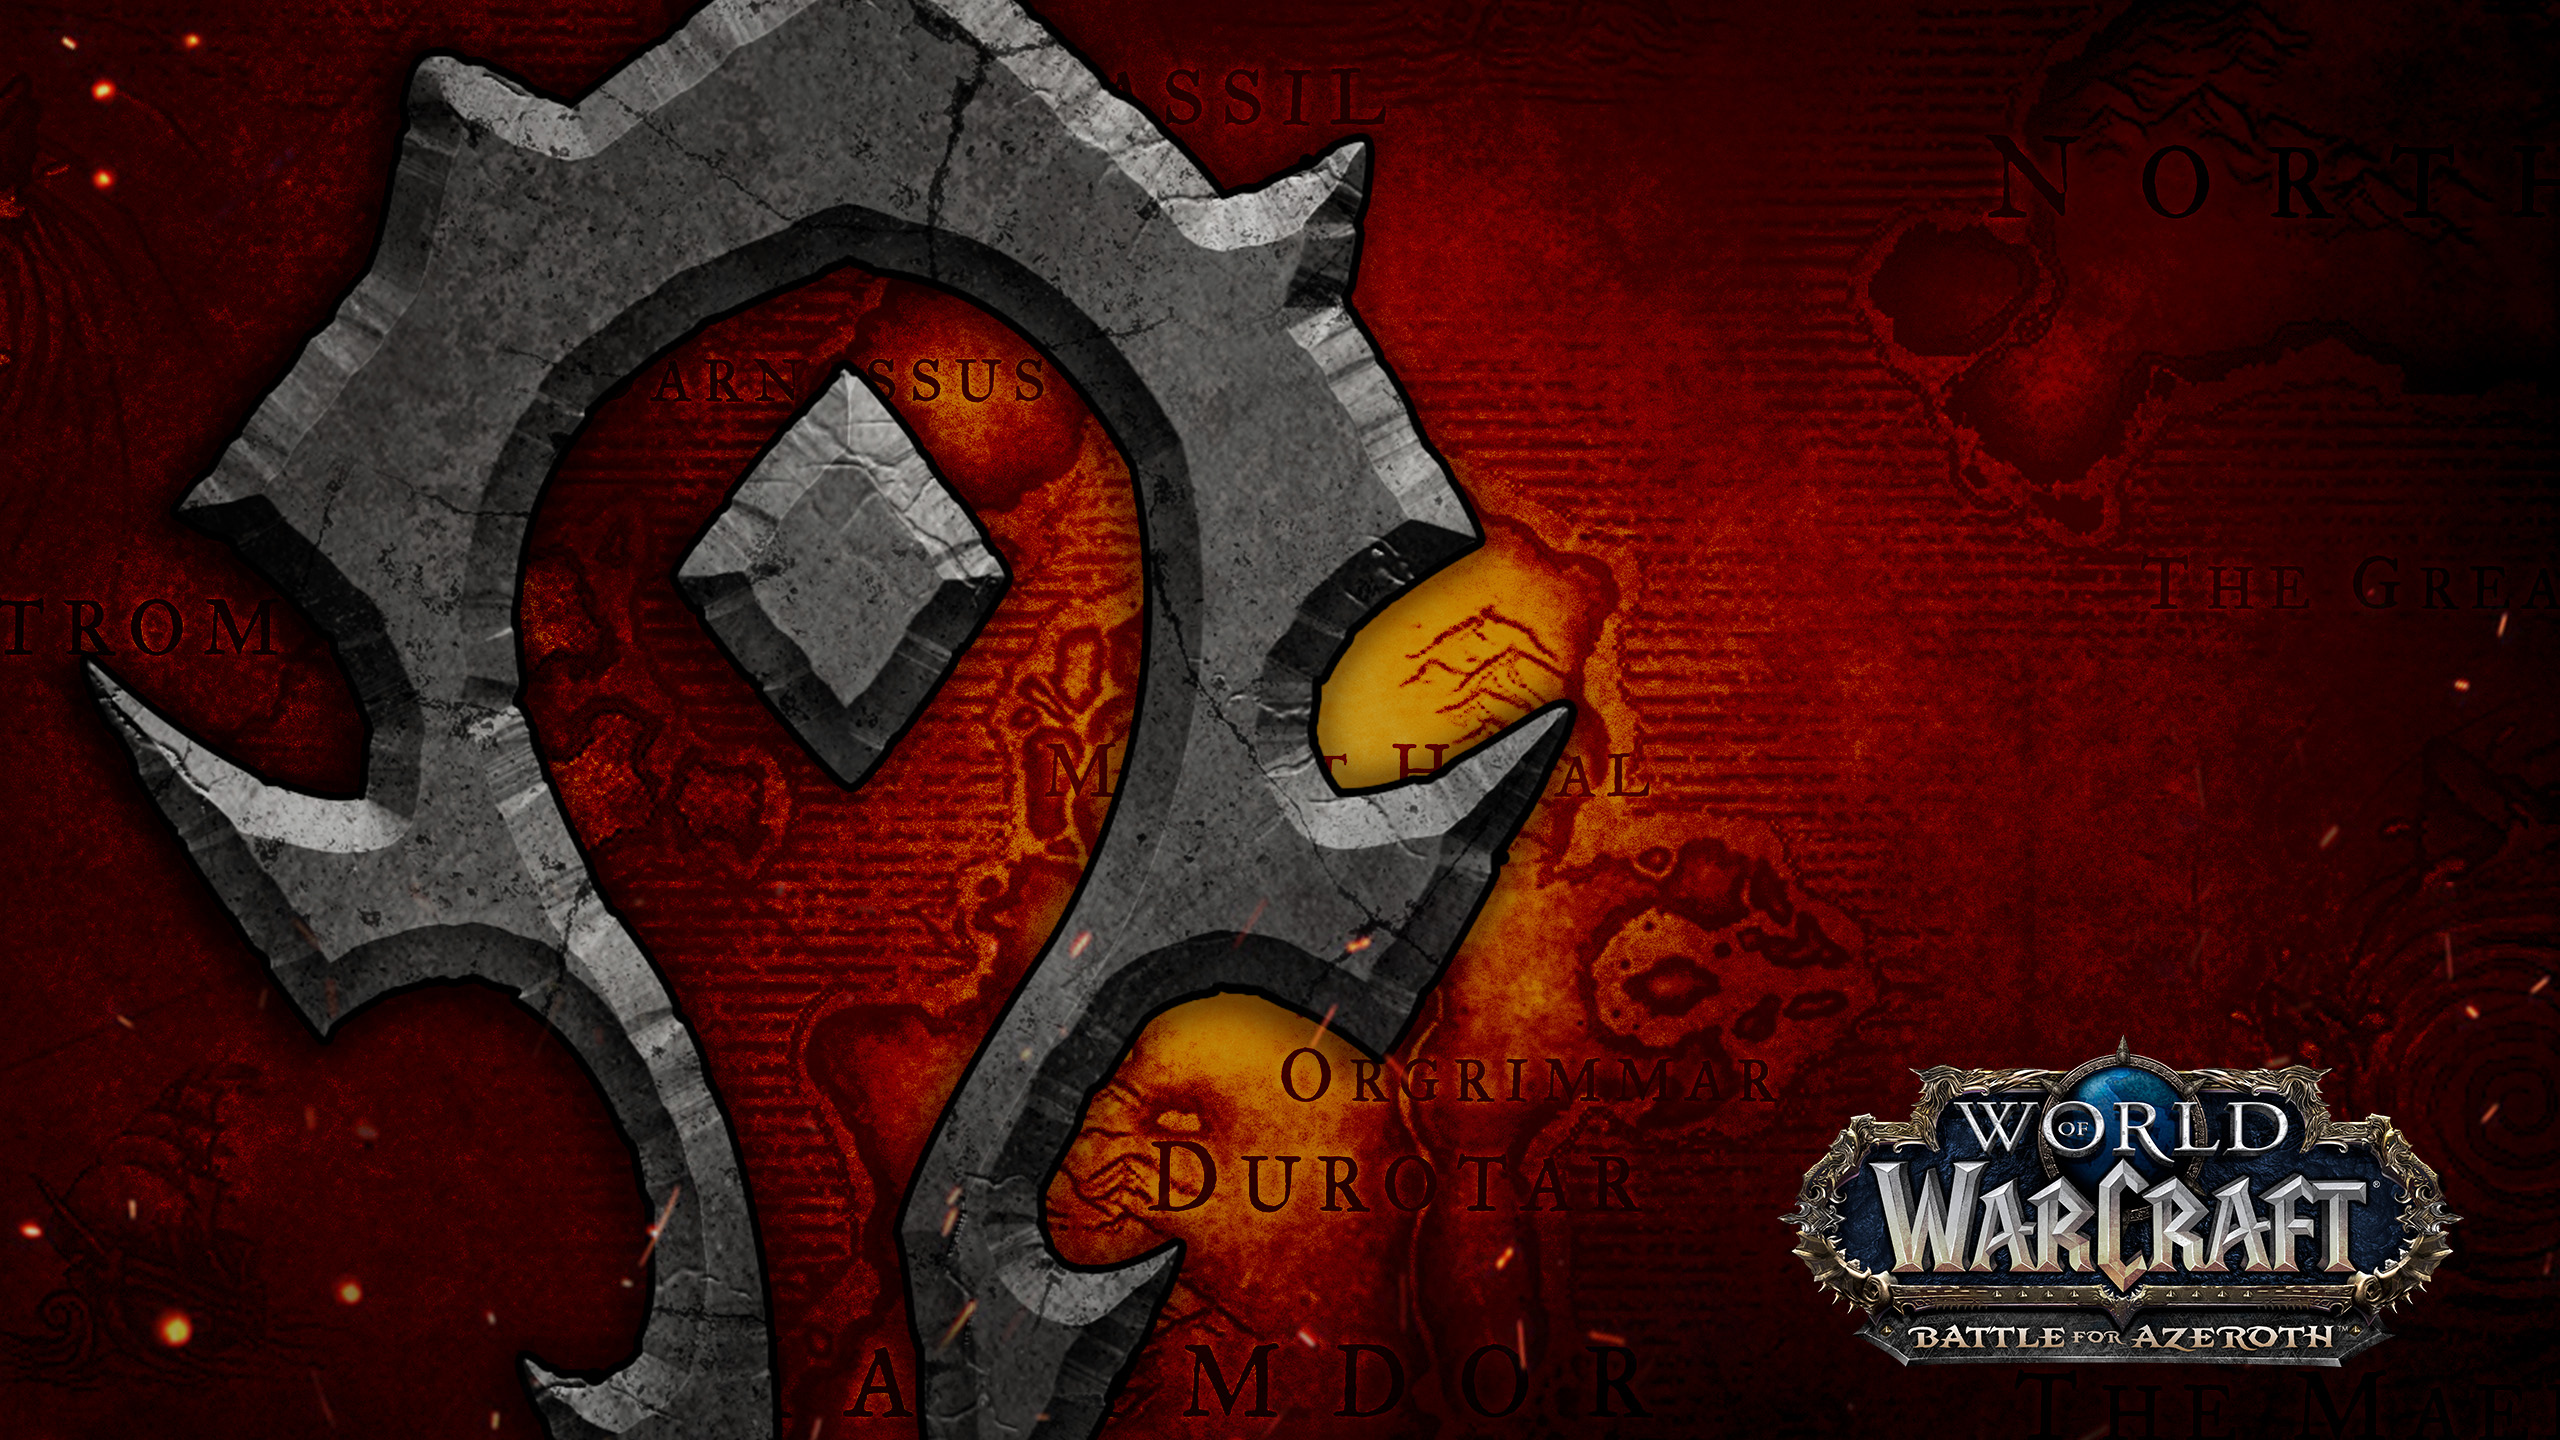 World Of Warcraft Horde Hd Wallpaper Background Image